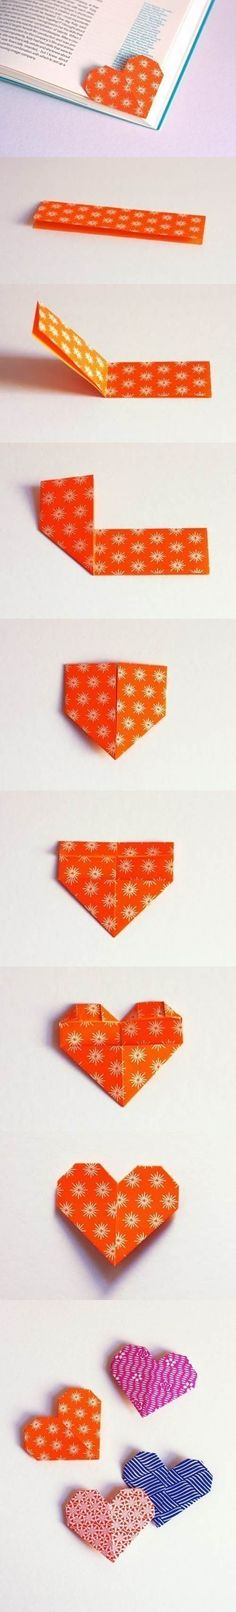 DIY Cute Origami Heart Shaped Bookmark | iCreativeIdeas.com Like Us on Facebook == https://www.facebook.com/icreativeideas